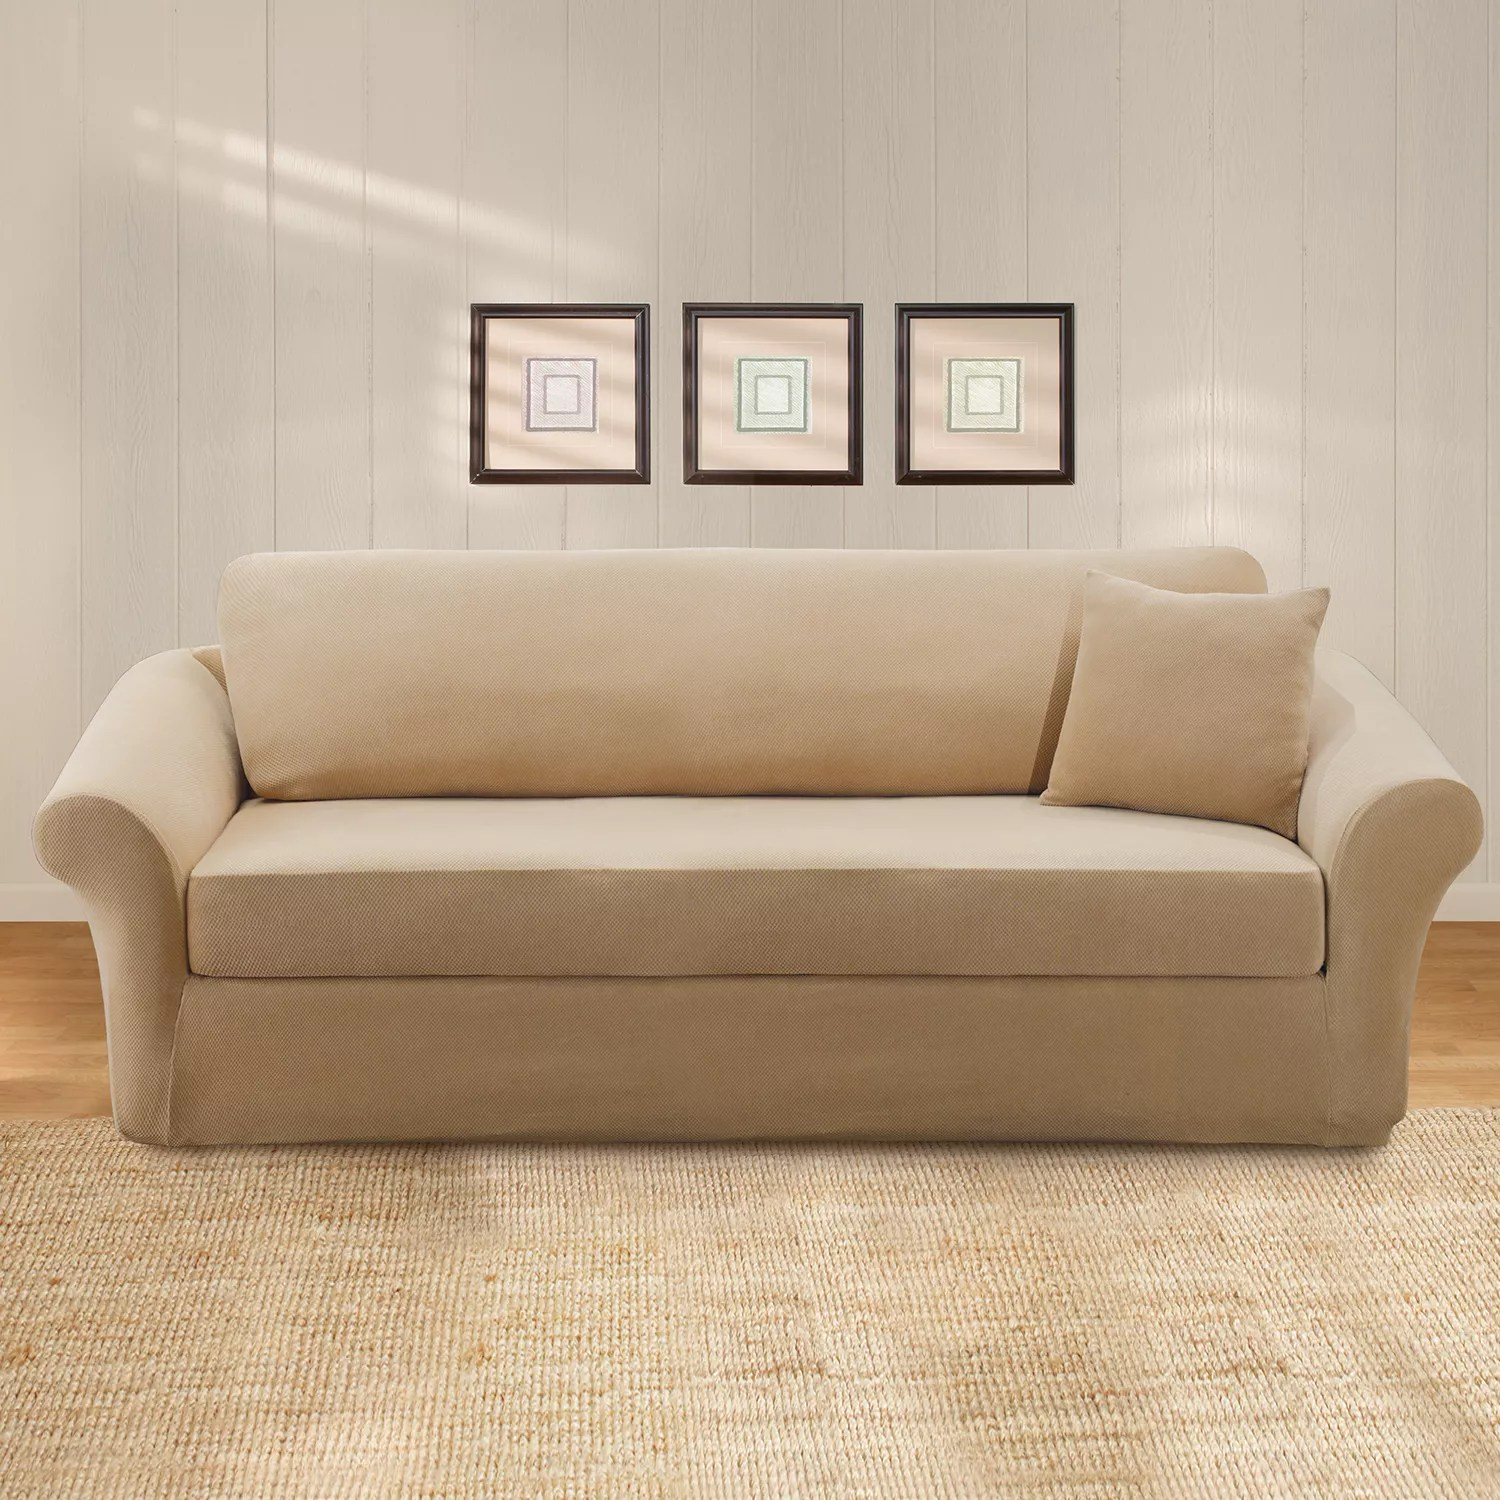 sure fit stretch pearson 3 pc sleeper sofa slipcover full crate and barrel reviews pique